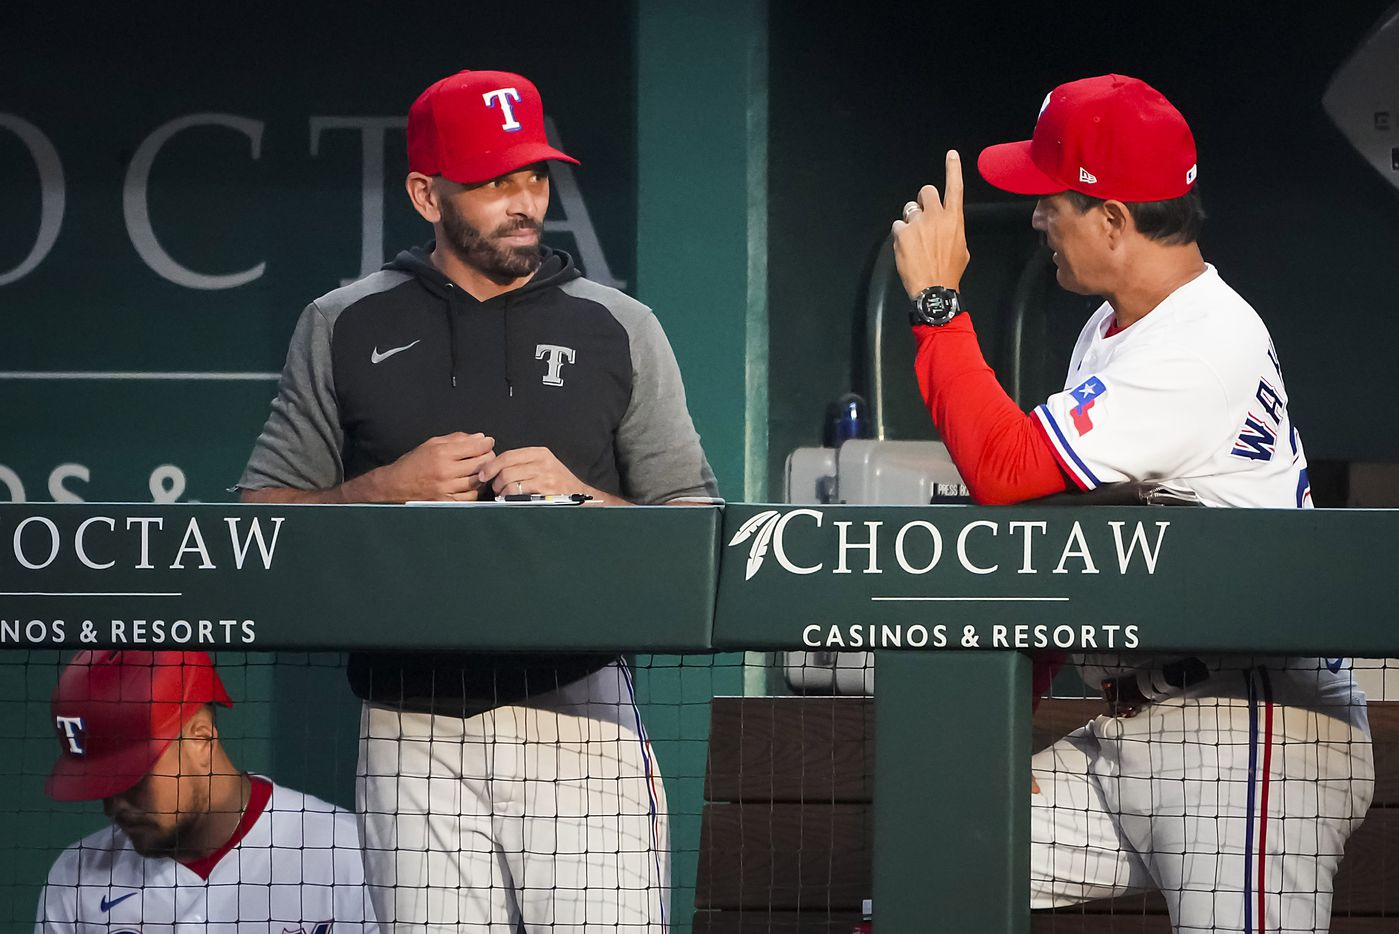 Texas Rangers manager Chris Woodward (left) talks with bench coach Don Wakamatsu in the dugout during the third inning against the Detroit Tigers at Globe Life Field on Tuesday, July 6, 2021.